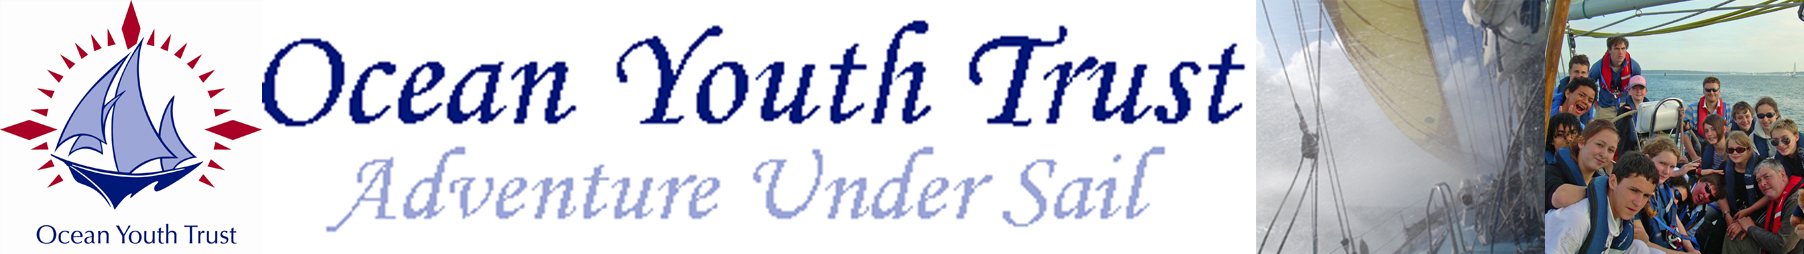 Ocean Youth Trust: Adventure Under Sail